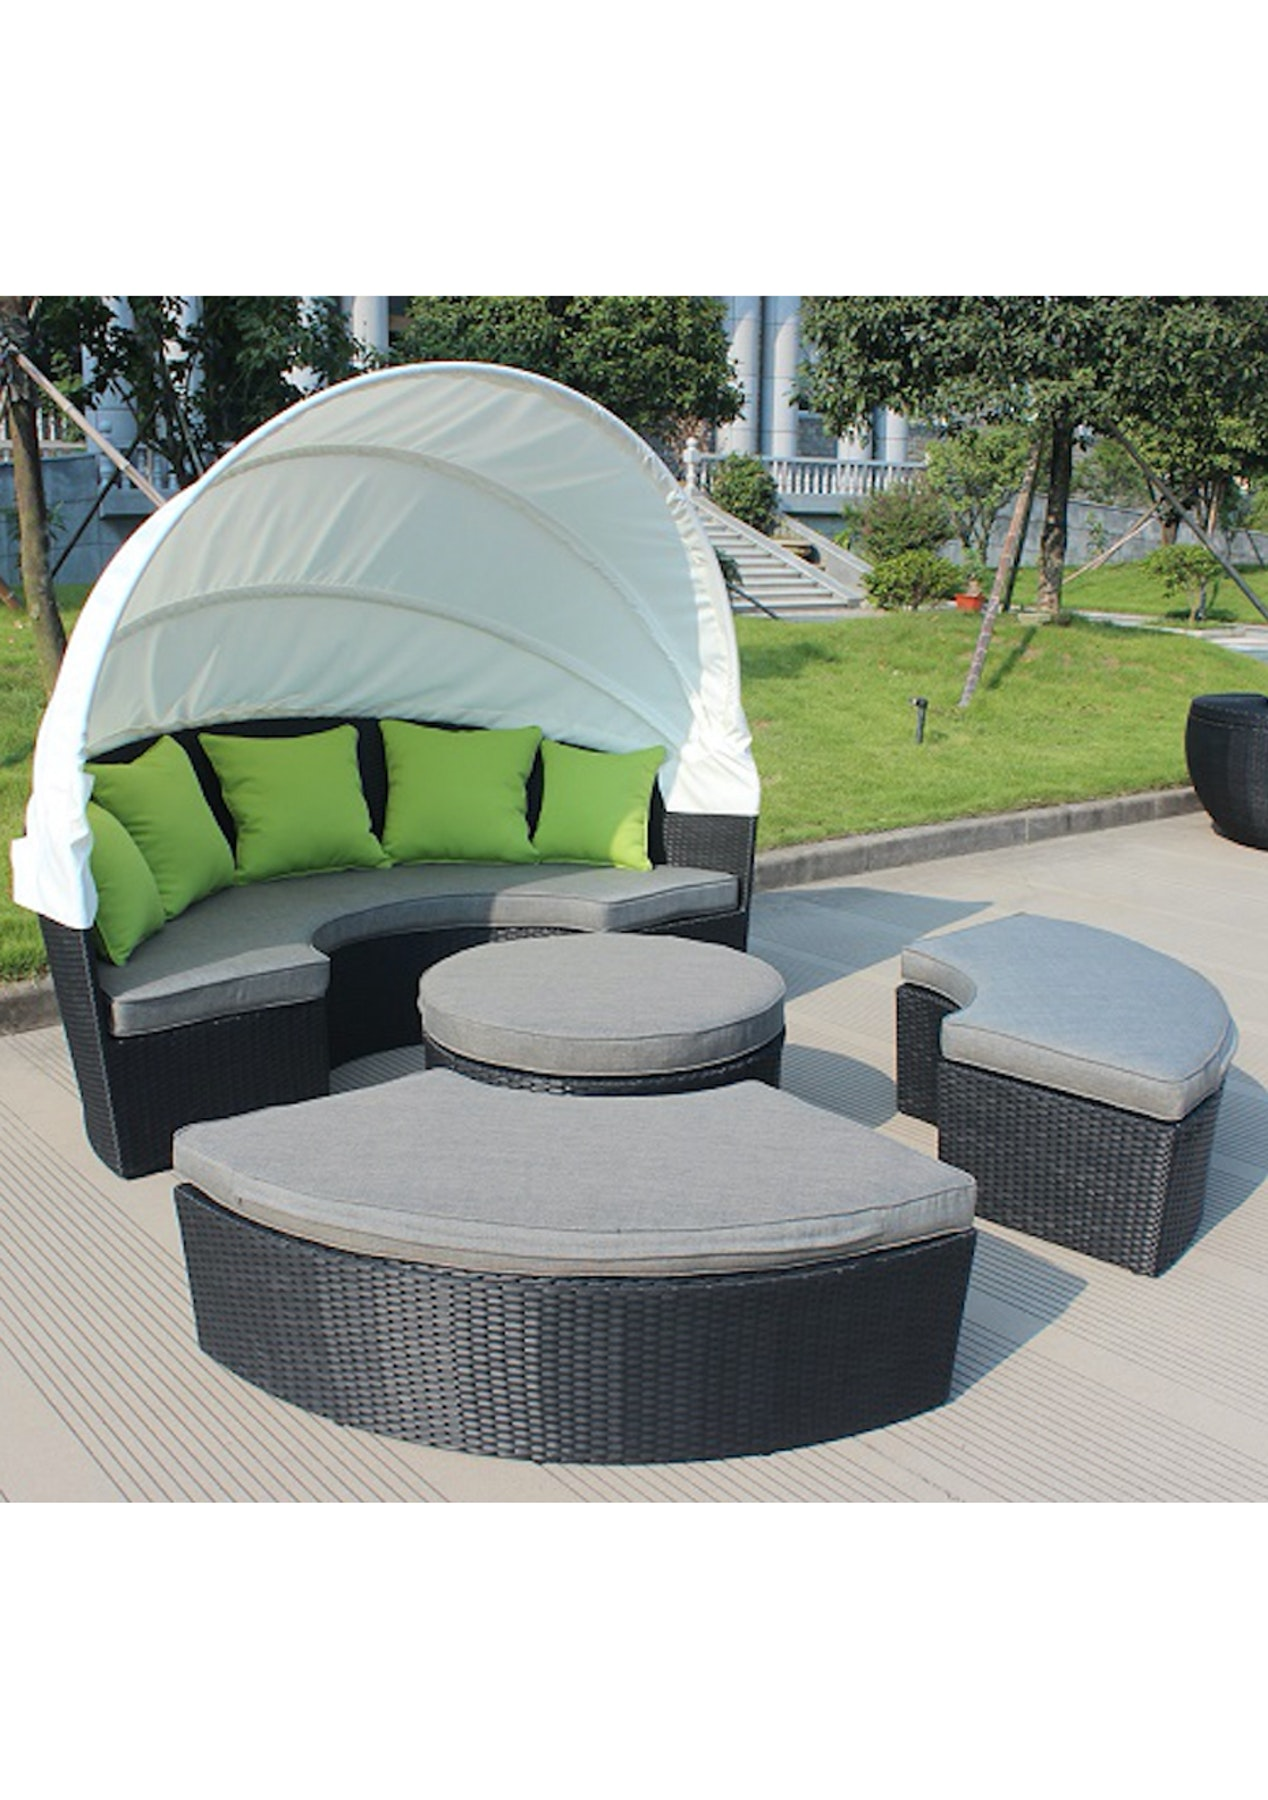 Multifunctional Outdoor Daybed Set With Canopy Outdoor